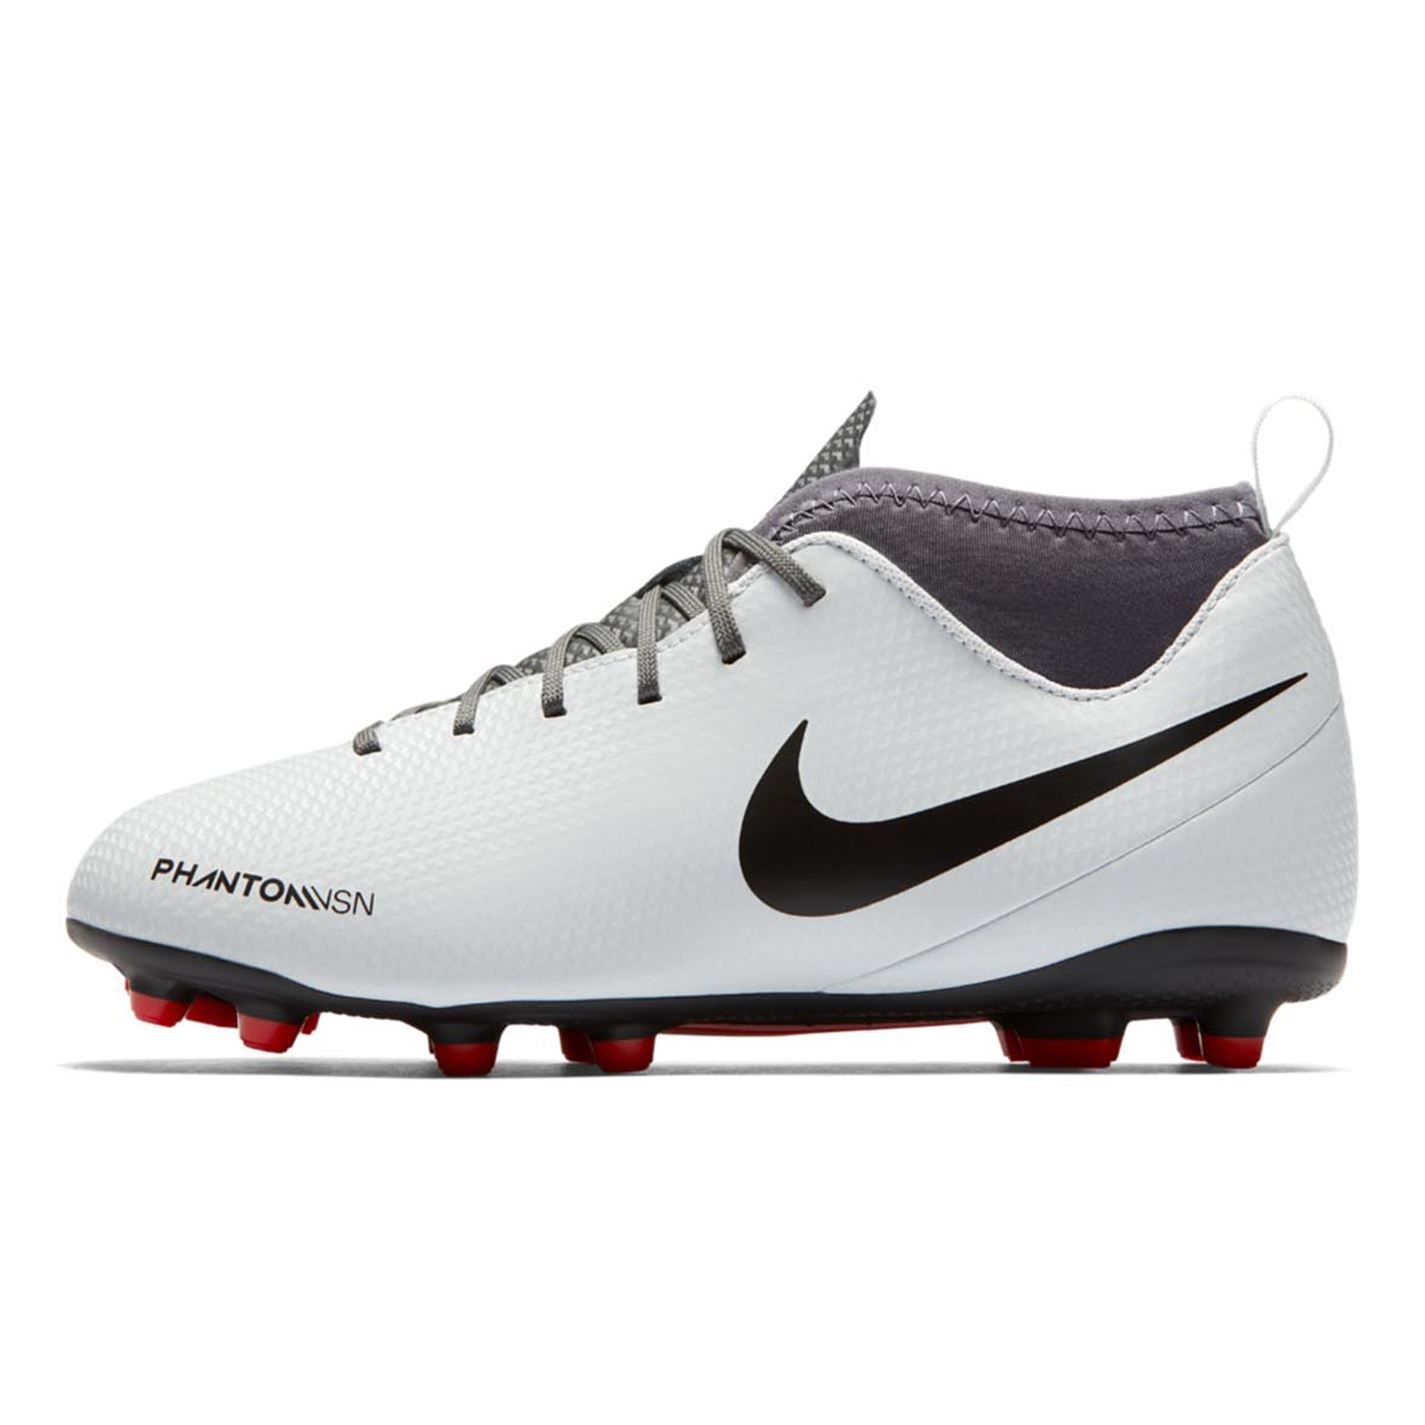 02034bd79 ... Nike Phantom Vision Club DF FG Firm Ground Football Boots Juniors  Soccer Cleats ...